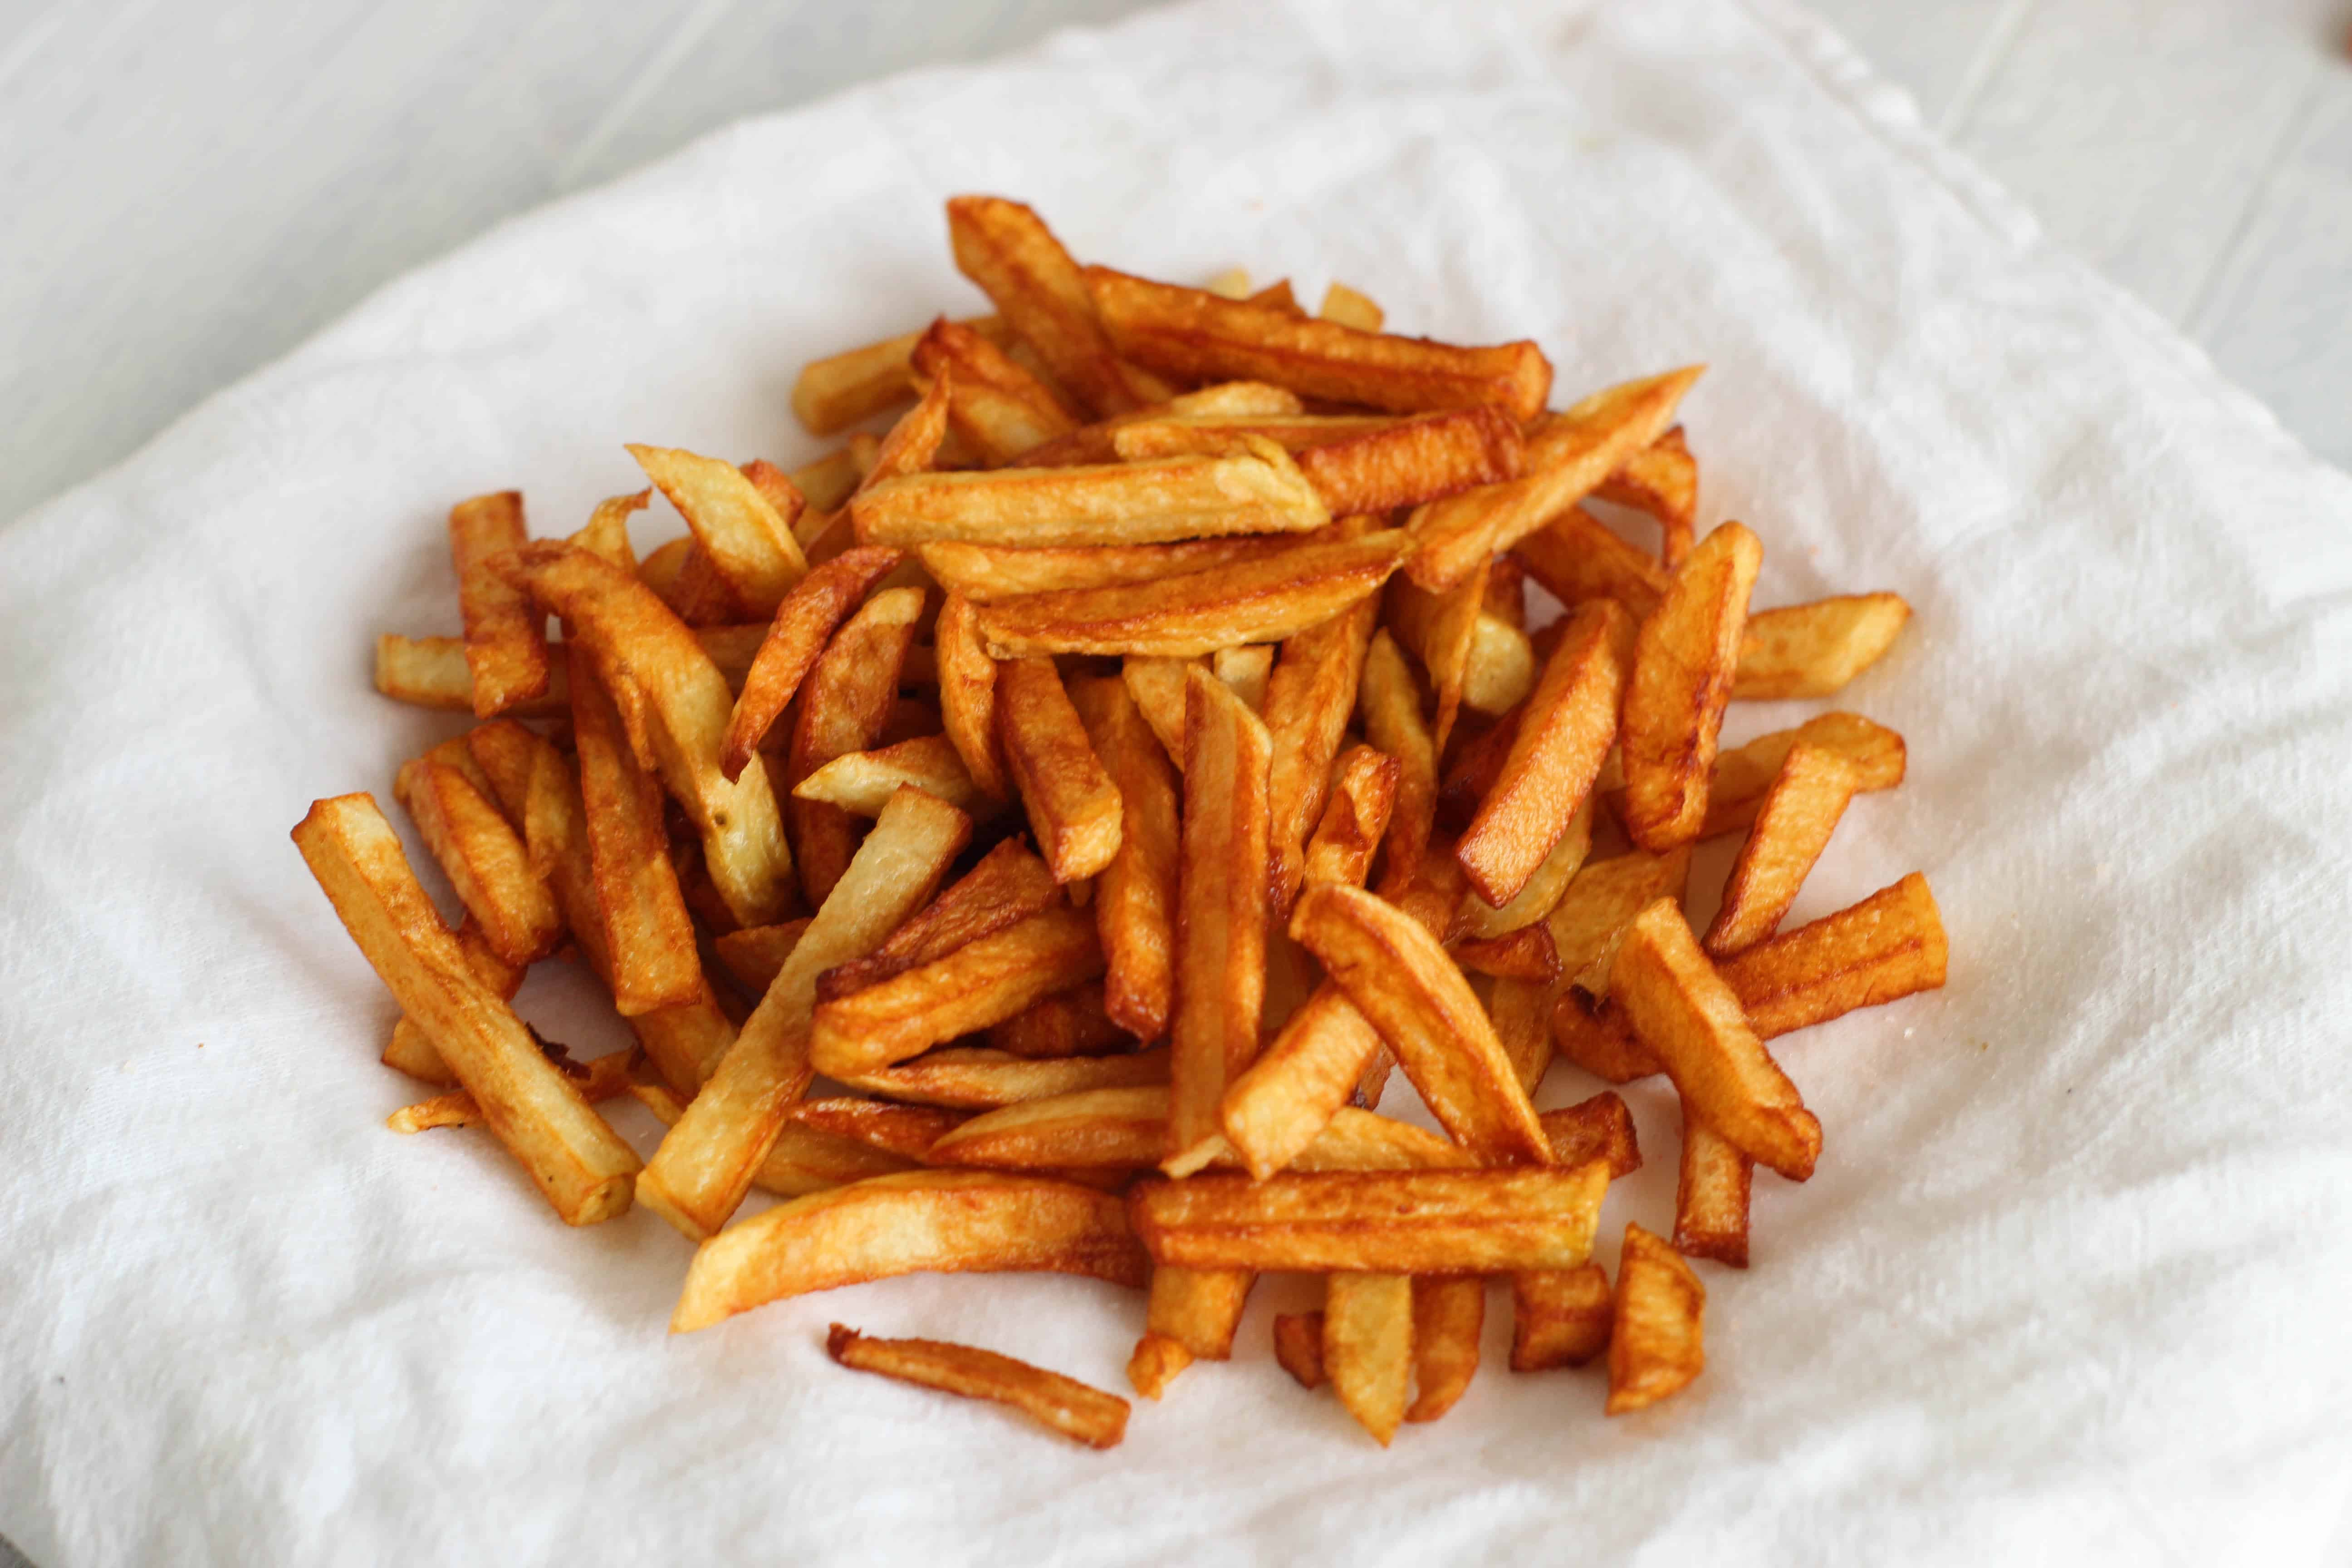 Crispy French fries on white towel.